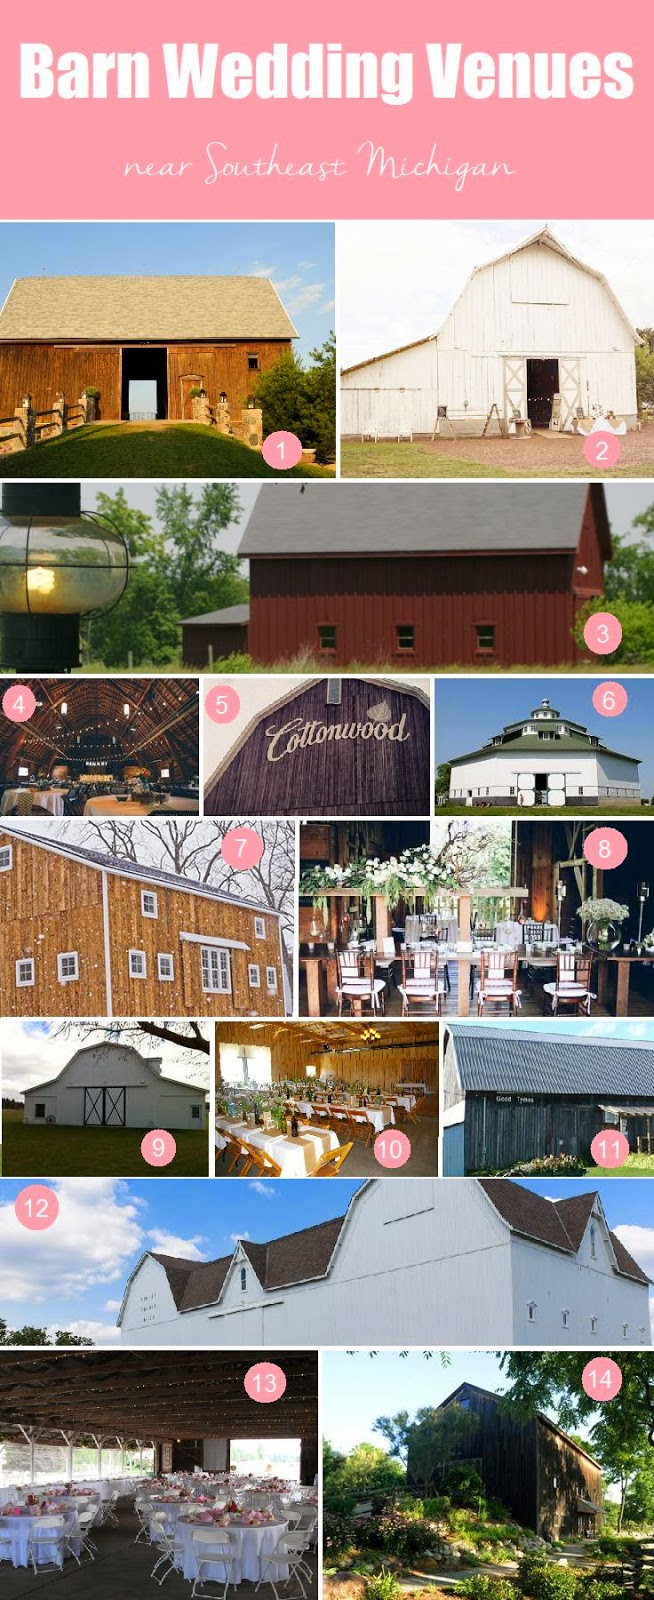 Michigan+Barn+Wedding+Venues.jpg